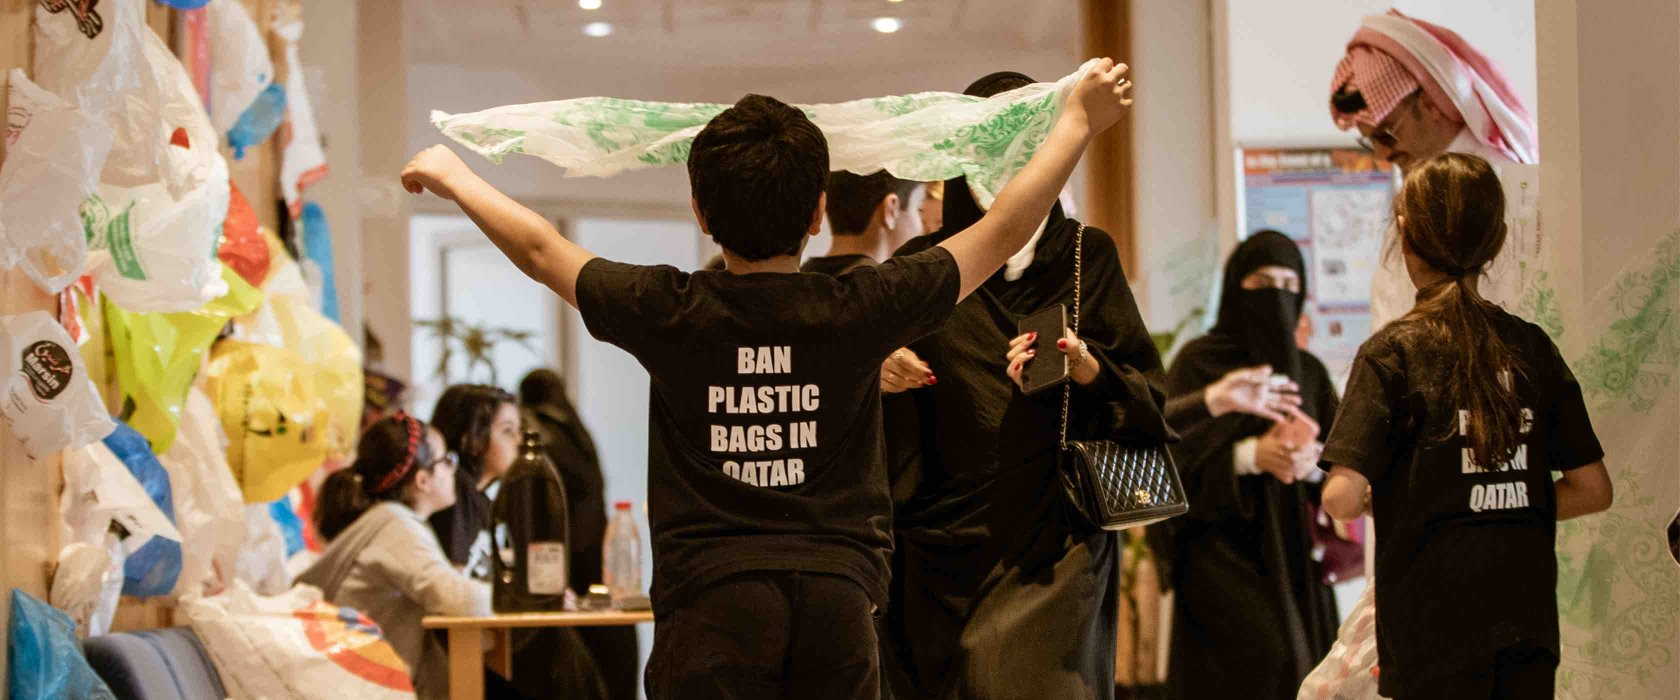 QF students' campaign calls for Qatar to ban plastic bags